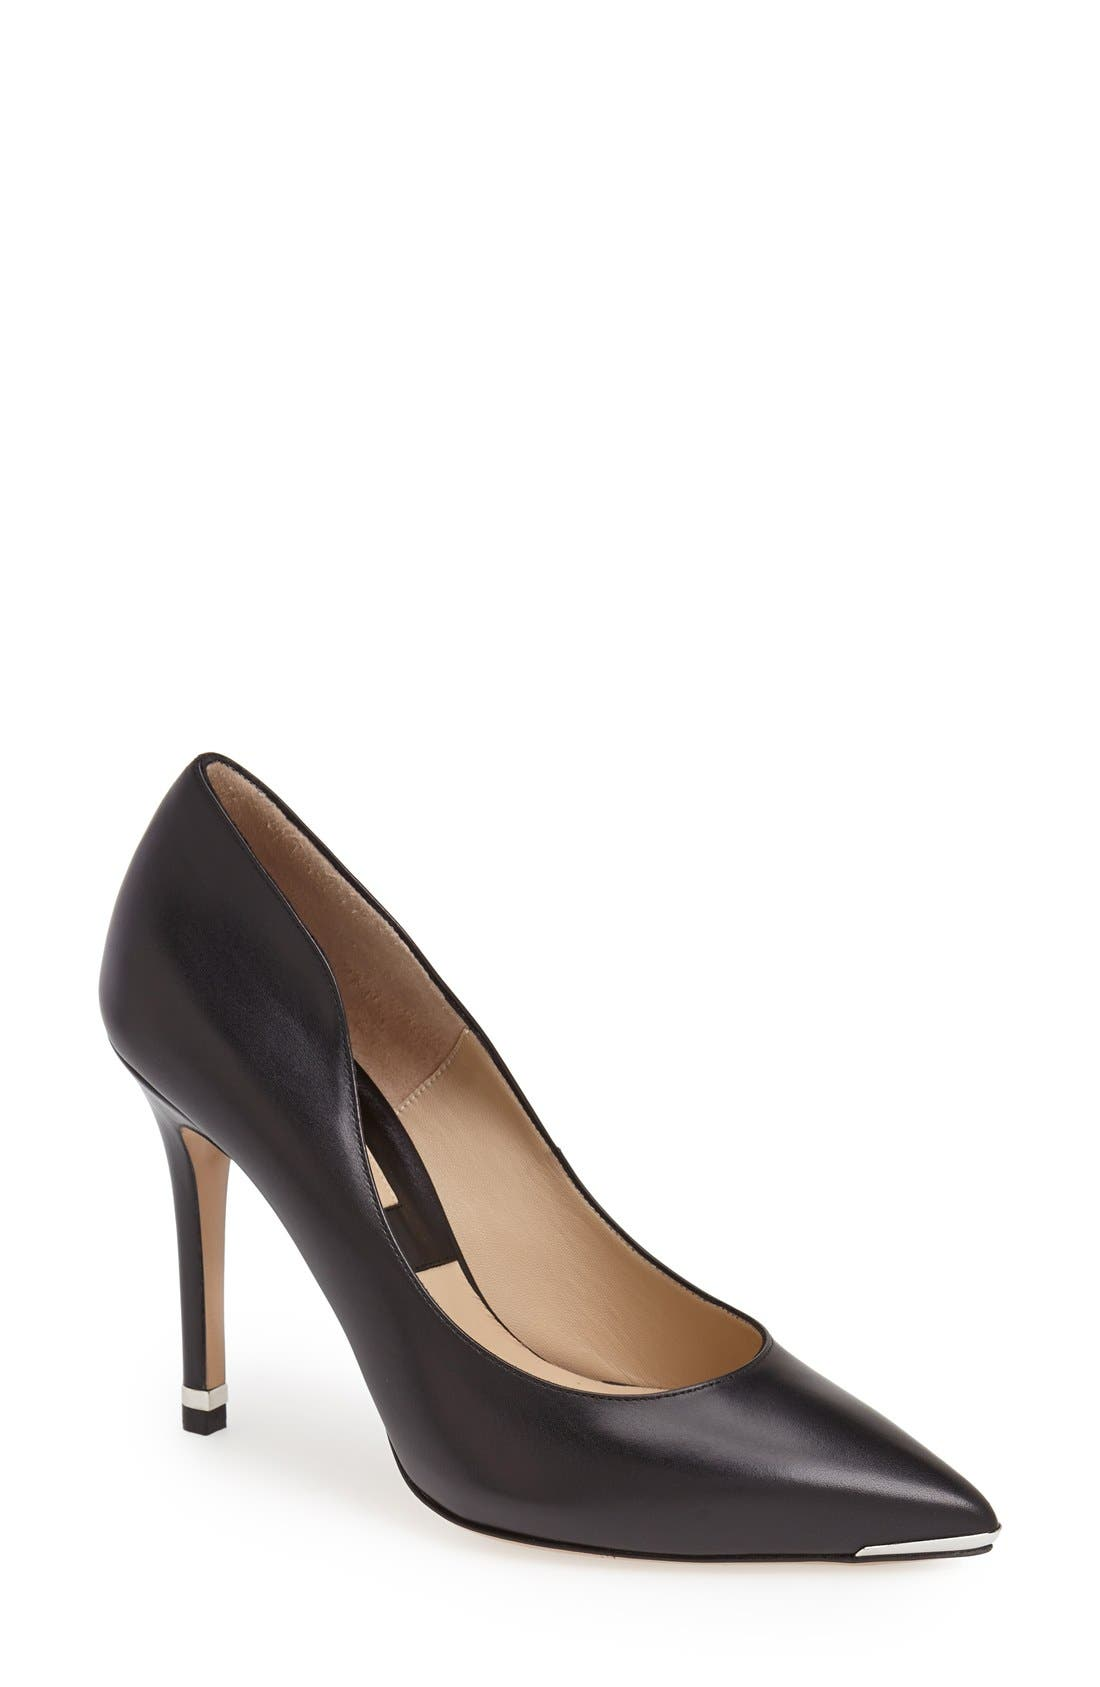 Main Image - Michael Kors 'Avra' Pointy Toe Pump (Women)